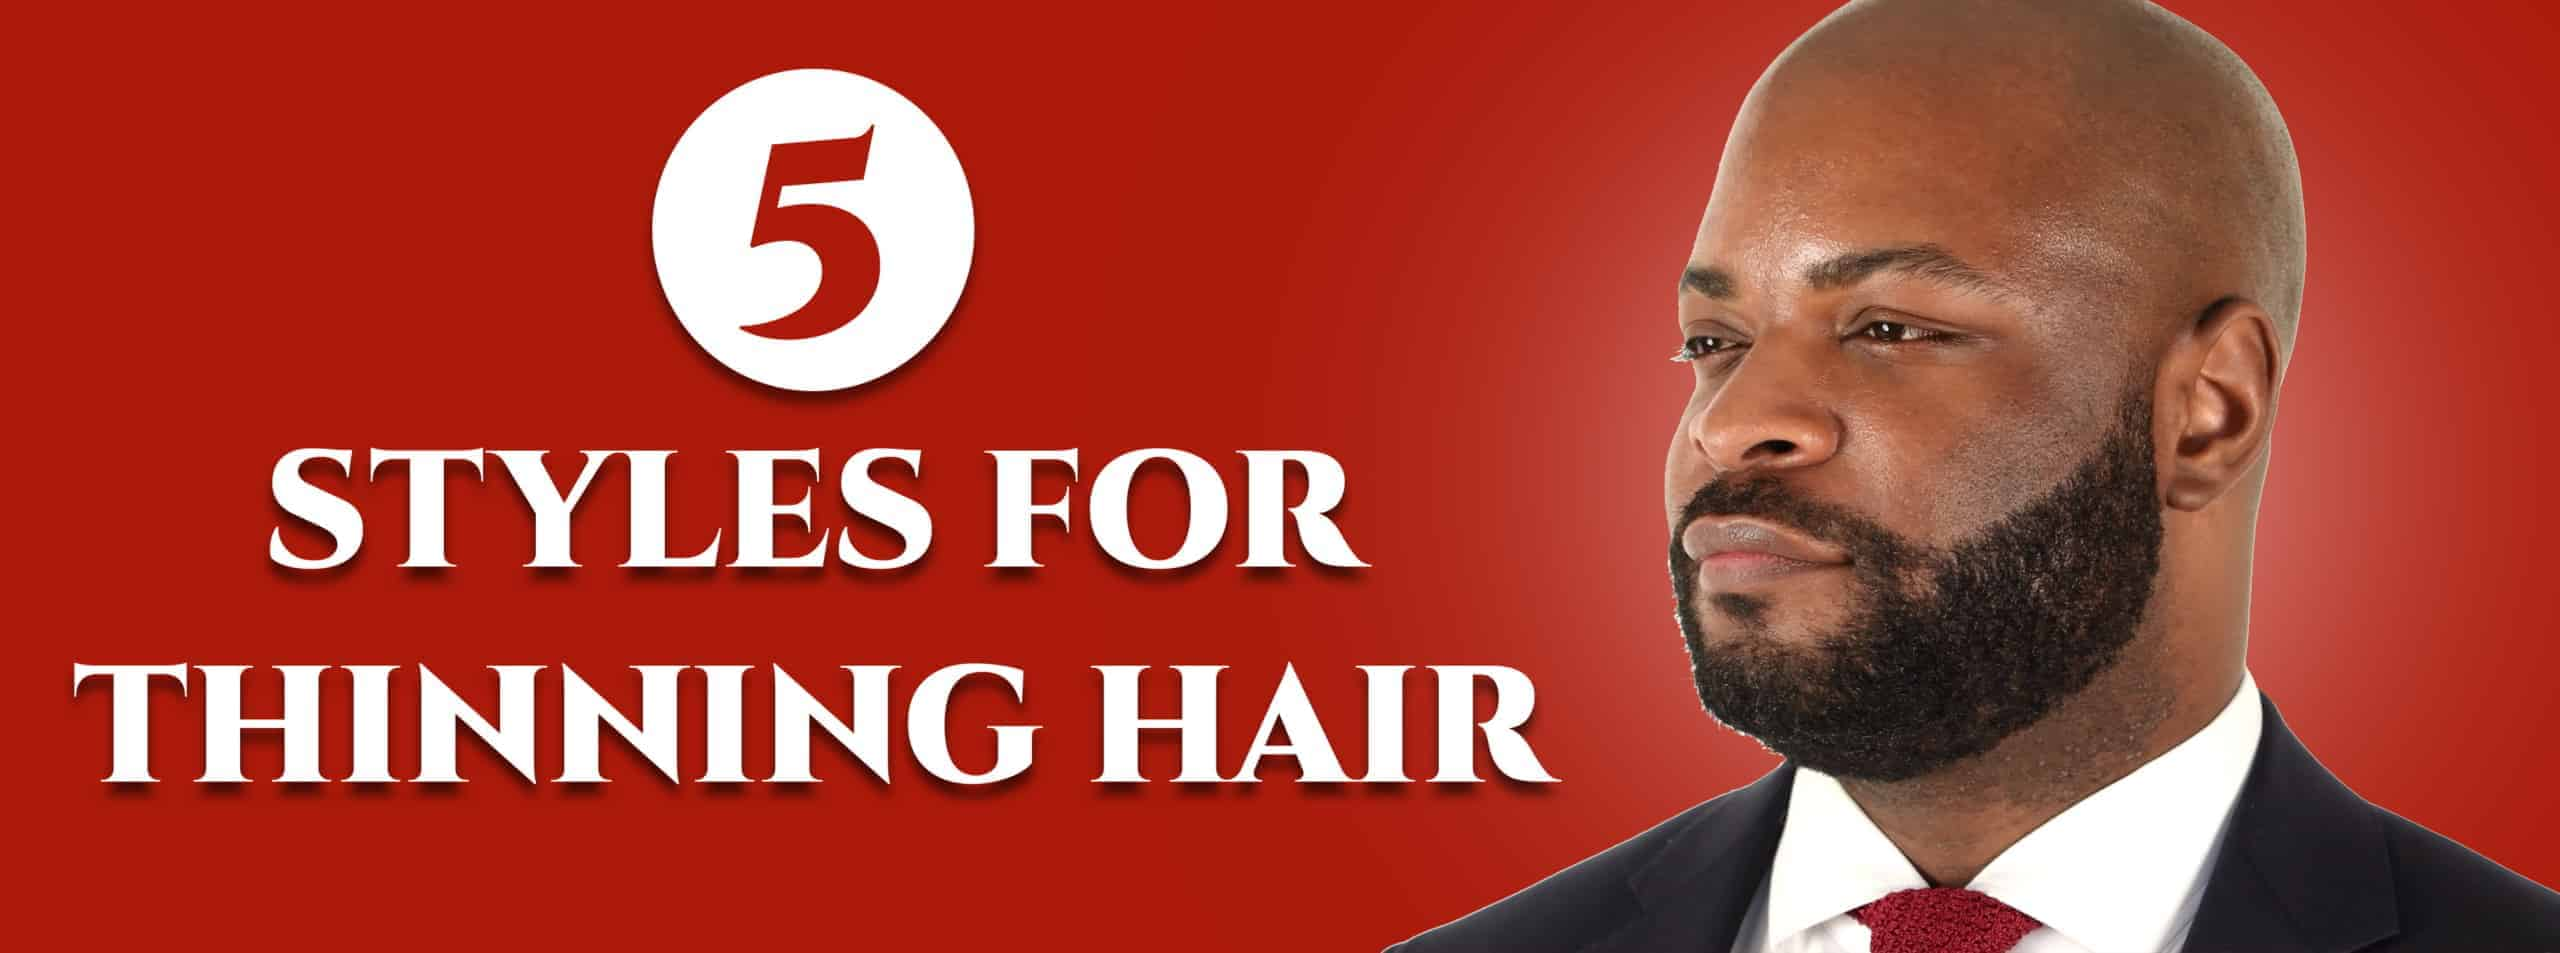 Is Your Hair Thinning Try These 18 Classic Men's Hairstyles   Gentleman's  Gazette